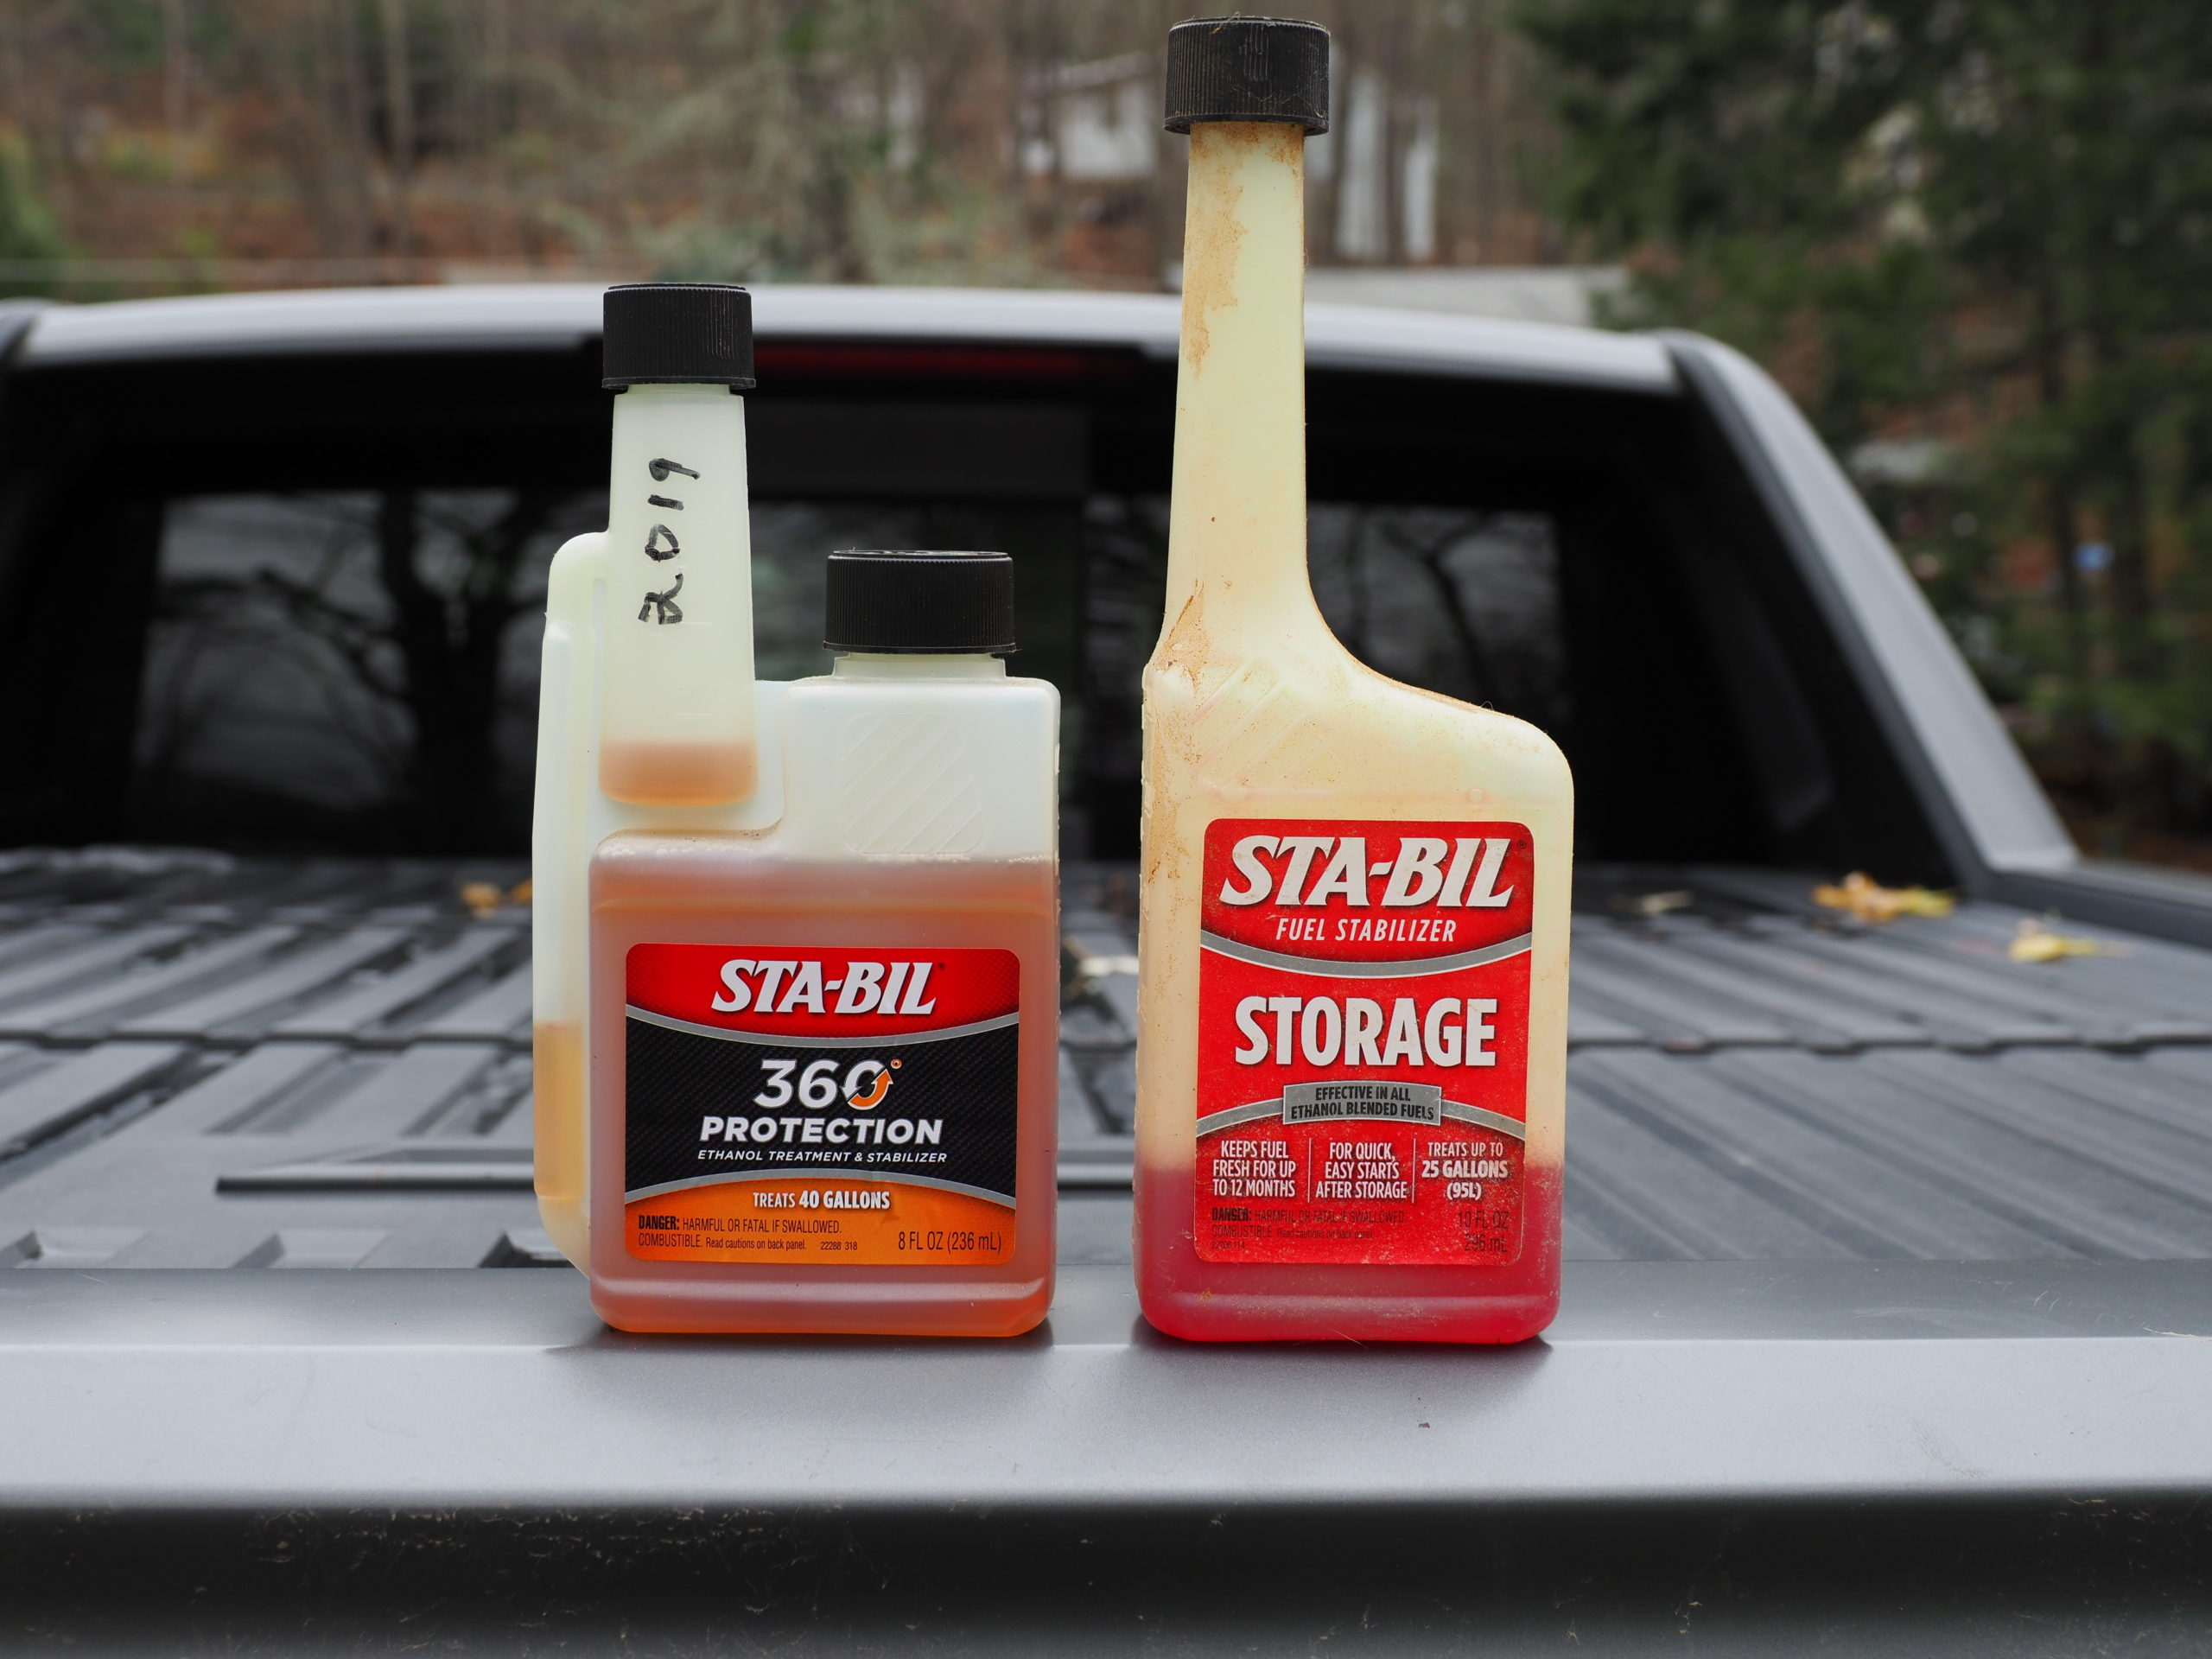 When buying fuel stabilizers you need to know if your engine gasoline is ethanol free (expensive) or from the pump (with 10 percent ethanol). If you pumped the gas, then the product at the left will remove the water from the ethanol gasoline. The product on the right is for ethanol-free gasoline.